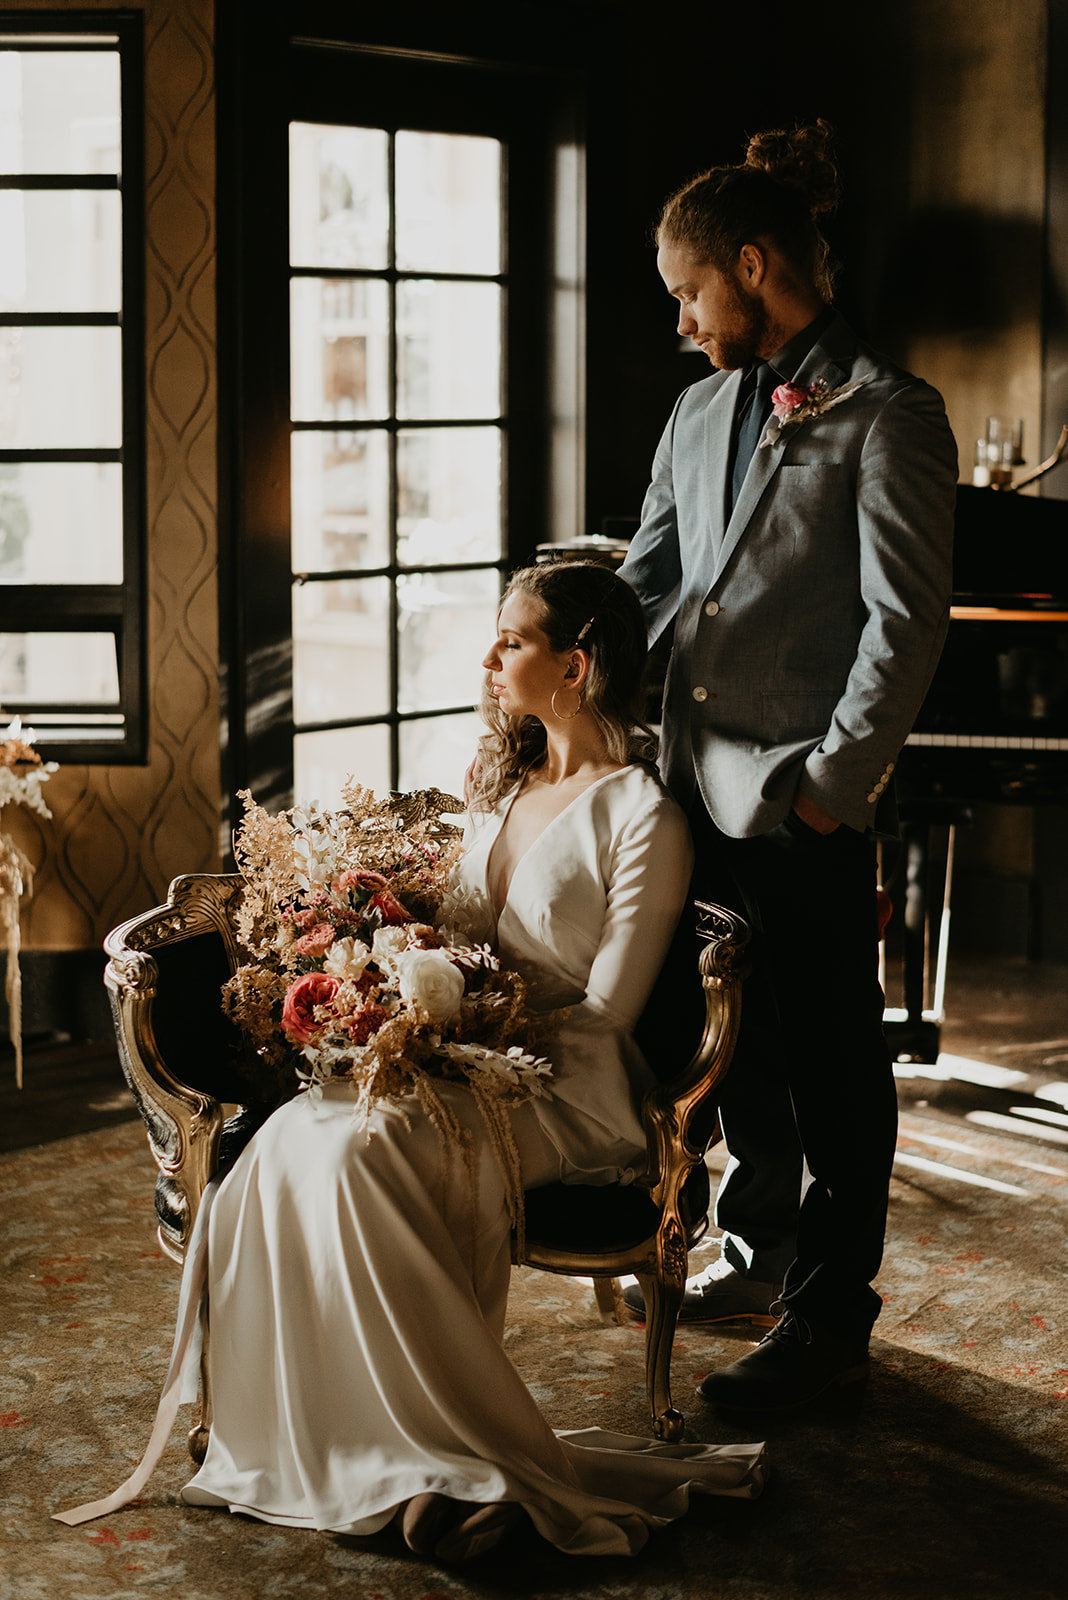 Britty + Beau - Elopement - The Ruins_ Seattle_ WA - Kamra Fuller Photography - Runaway With Me Elopement Collective-125